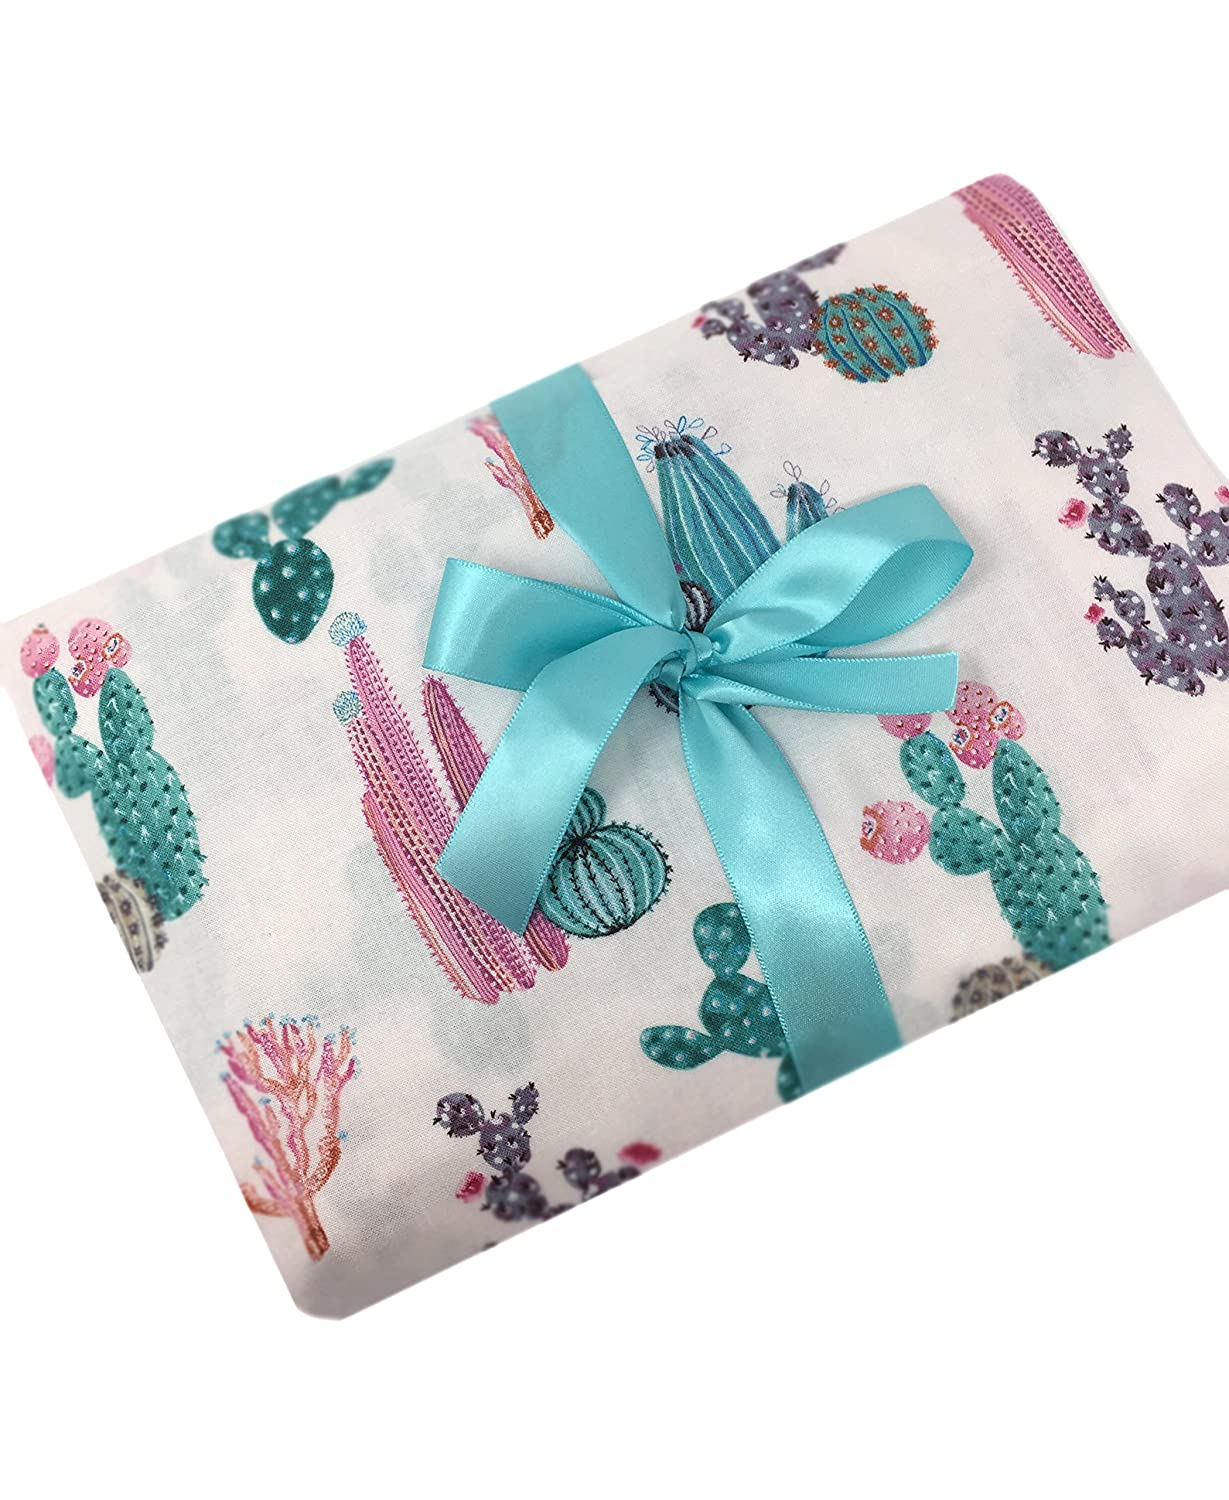 Cactus floral fitted crib sheet handmade in USA